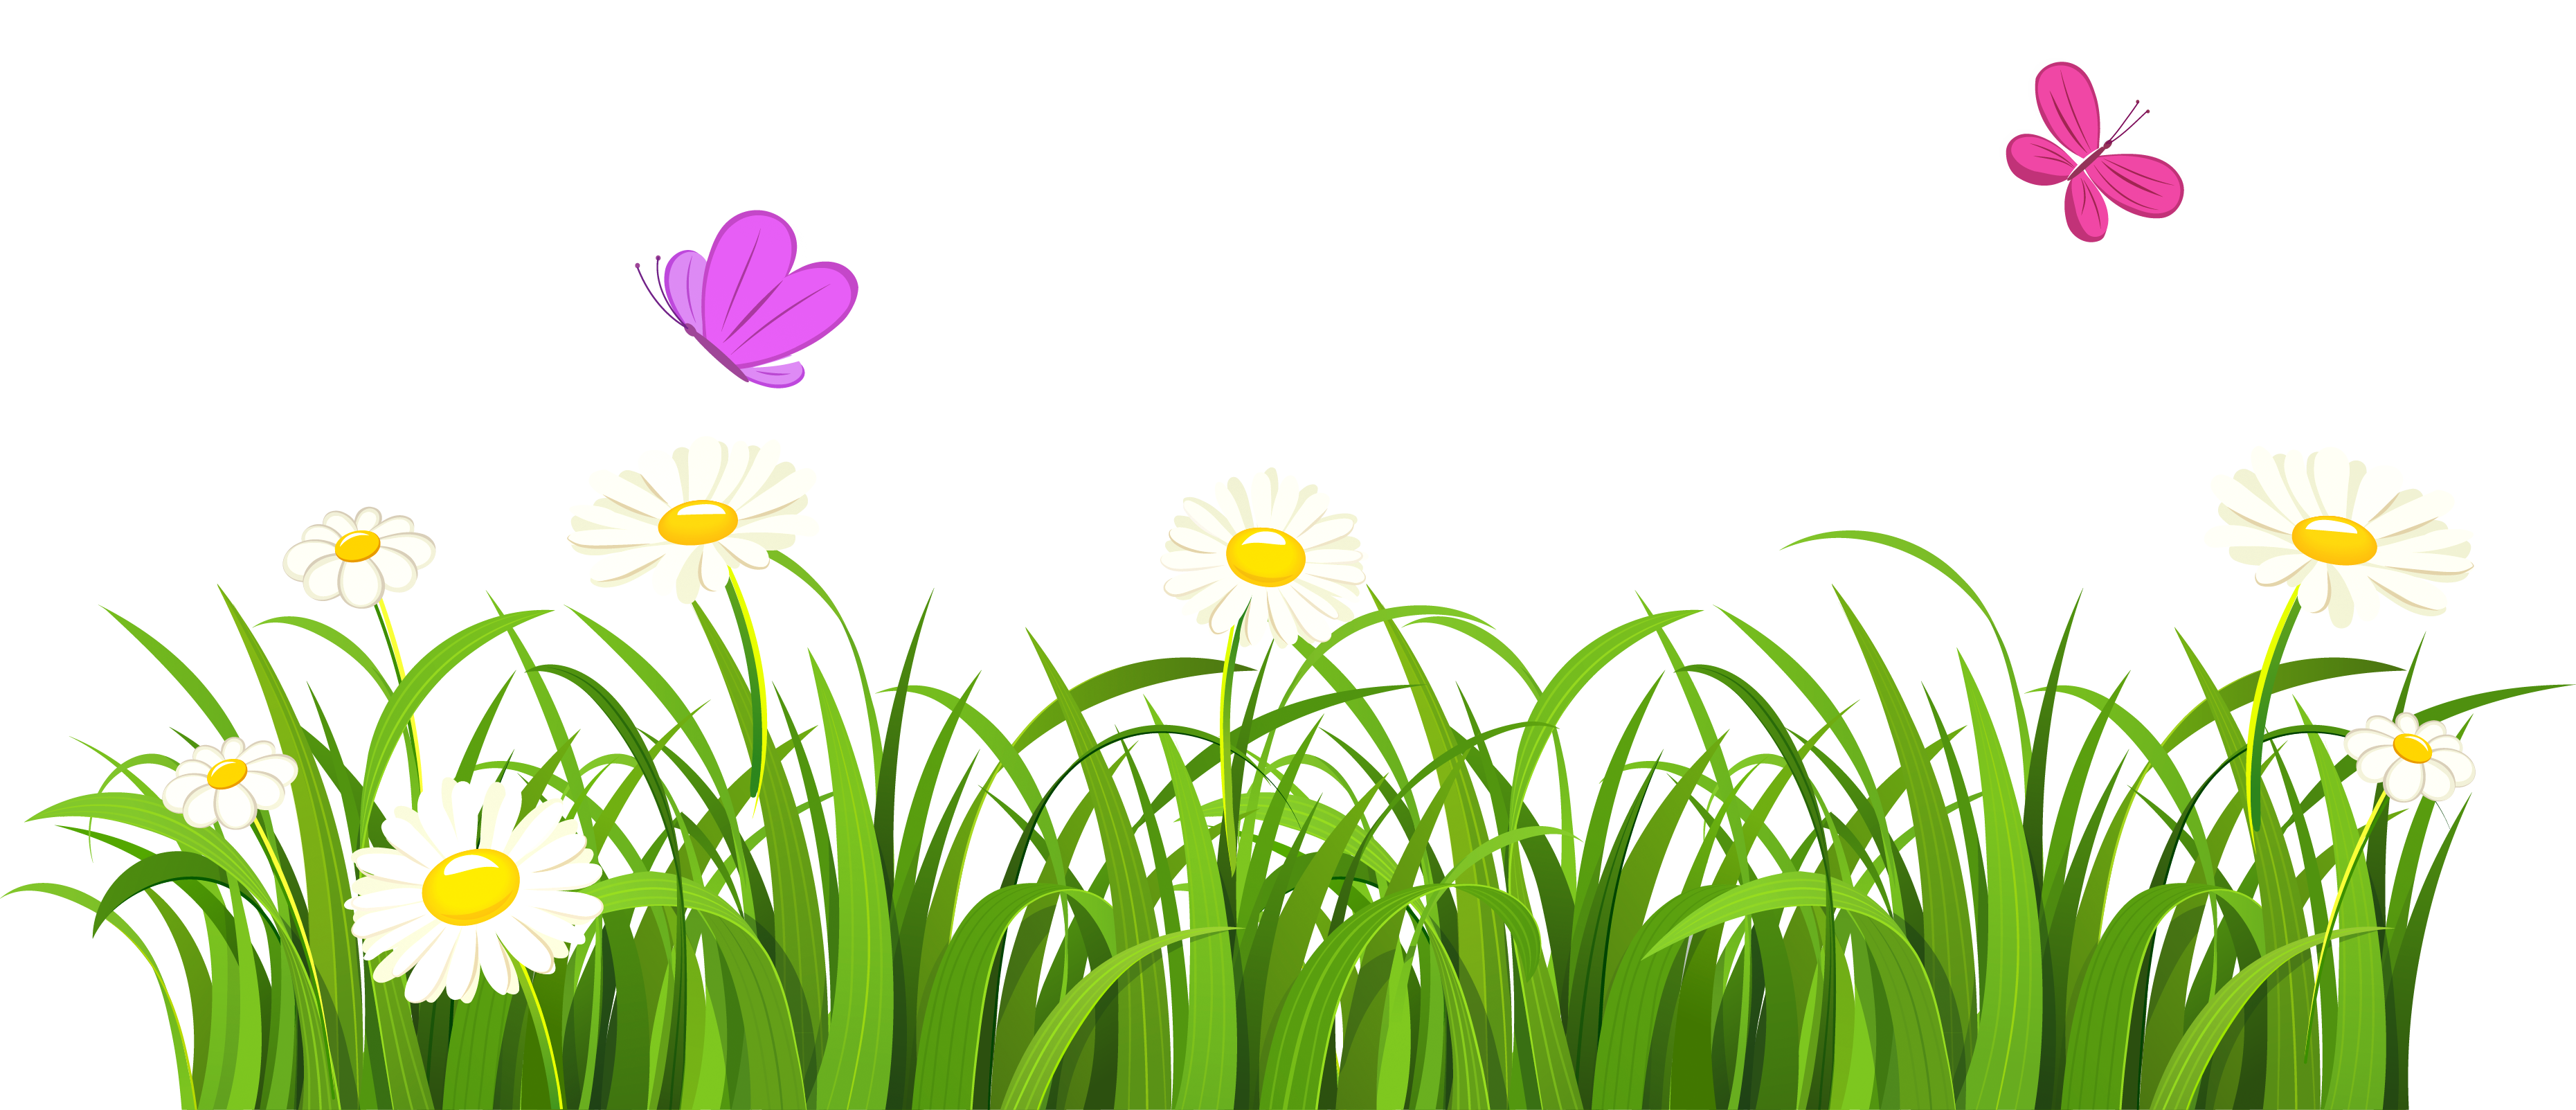 20 Garden Clipart Cartoon For Free Download On Ya Webdesign